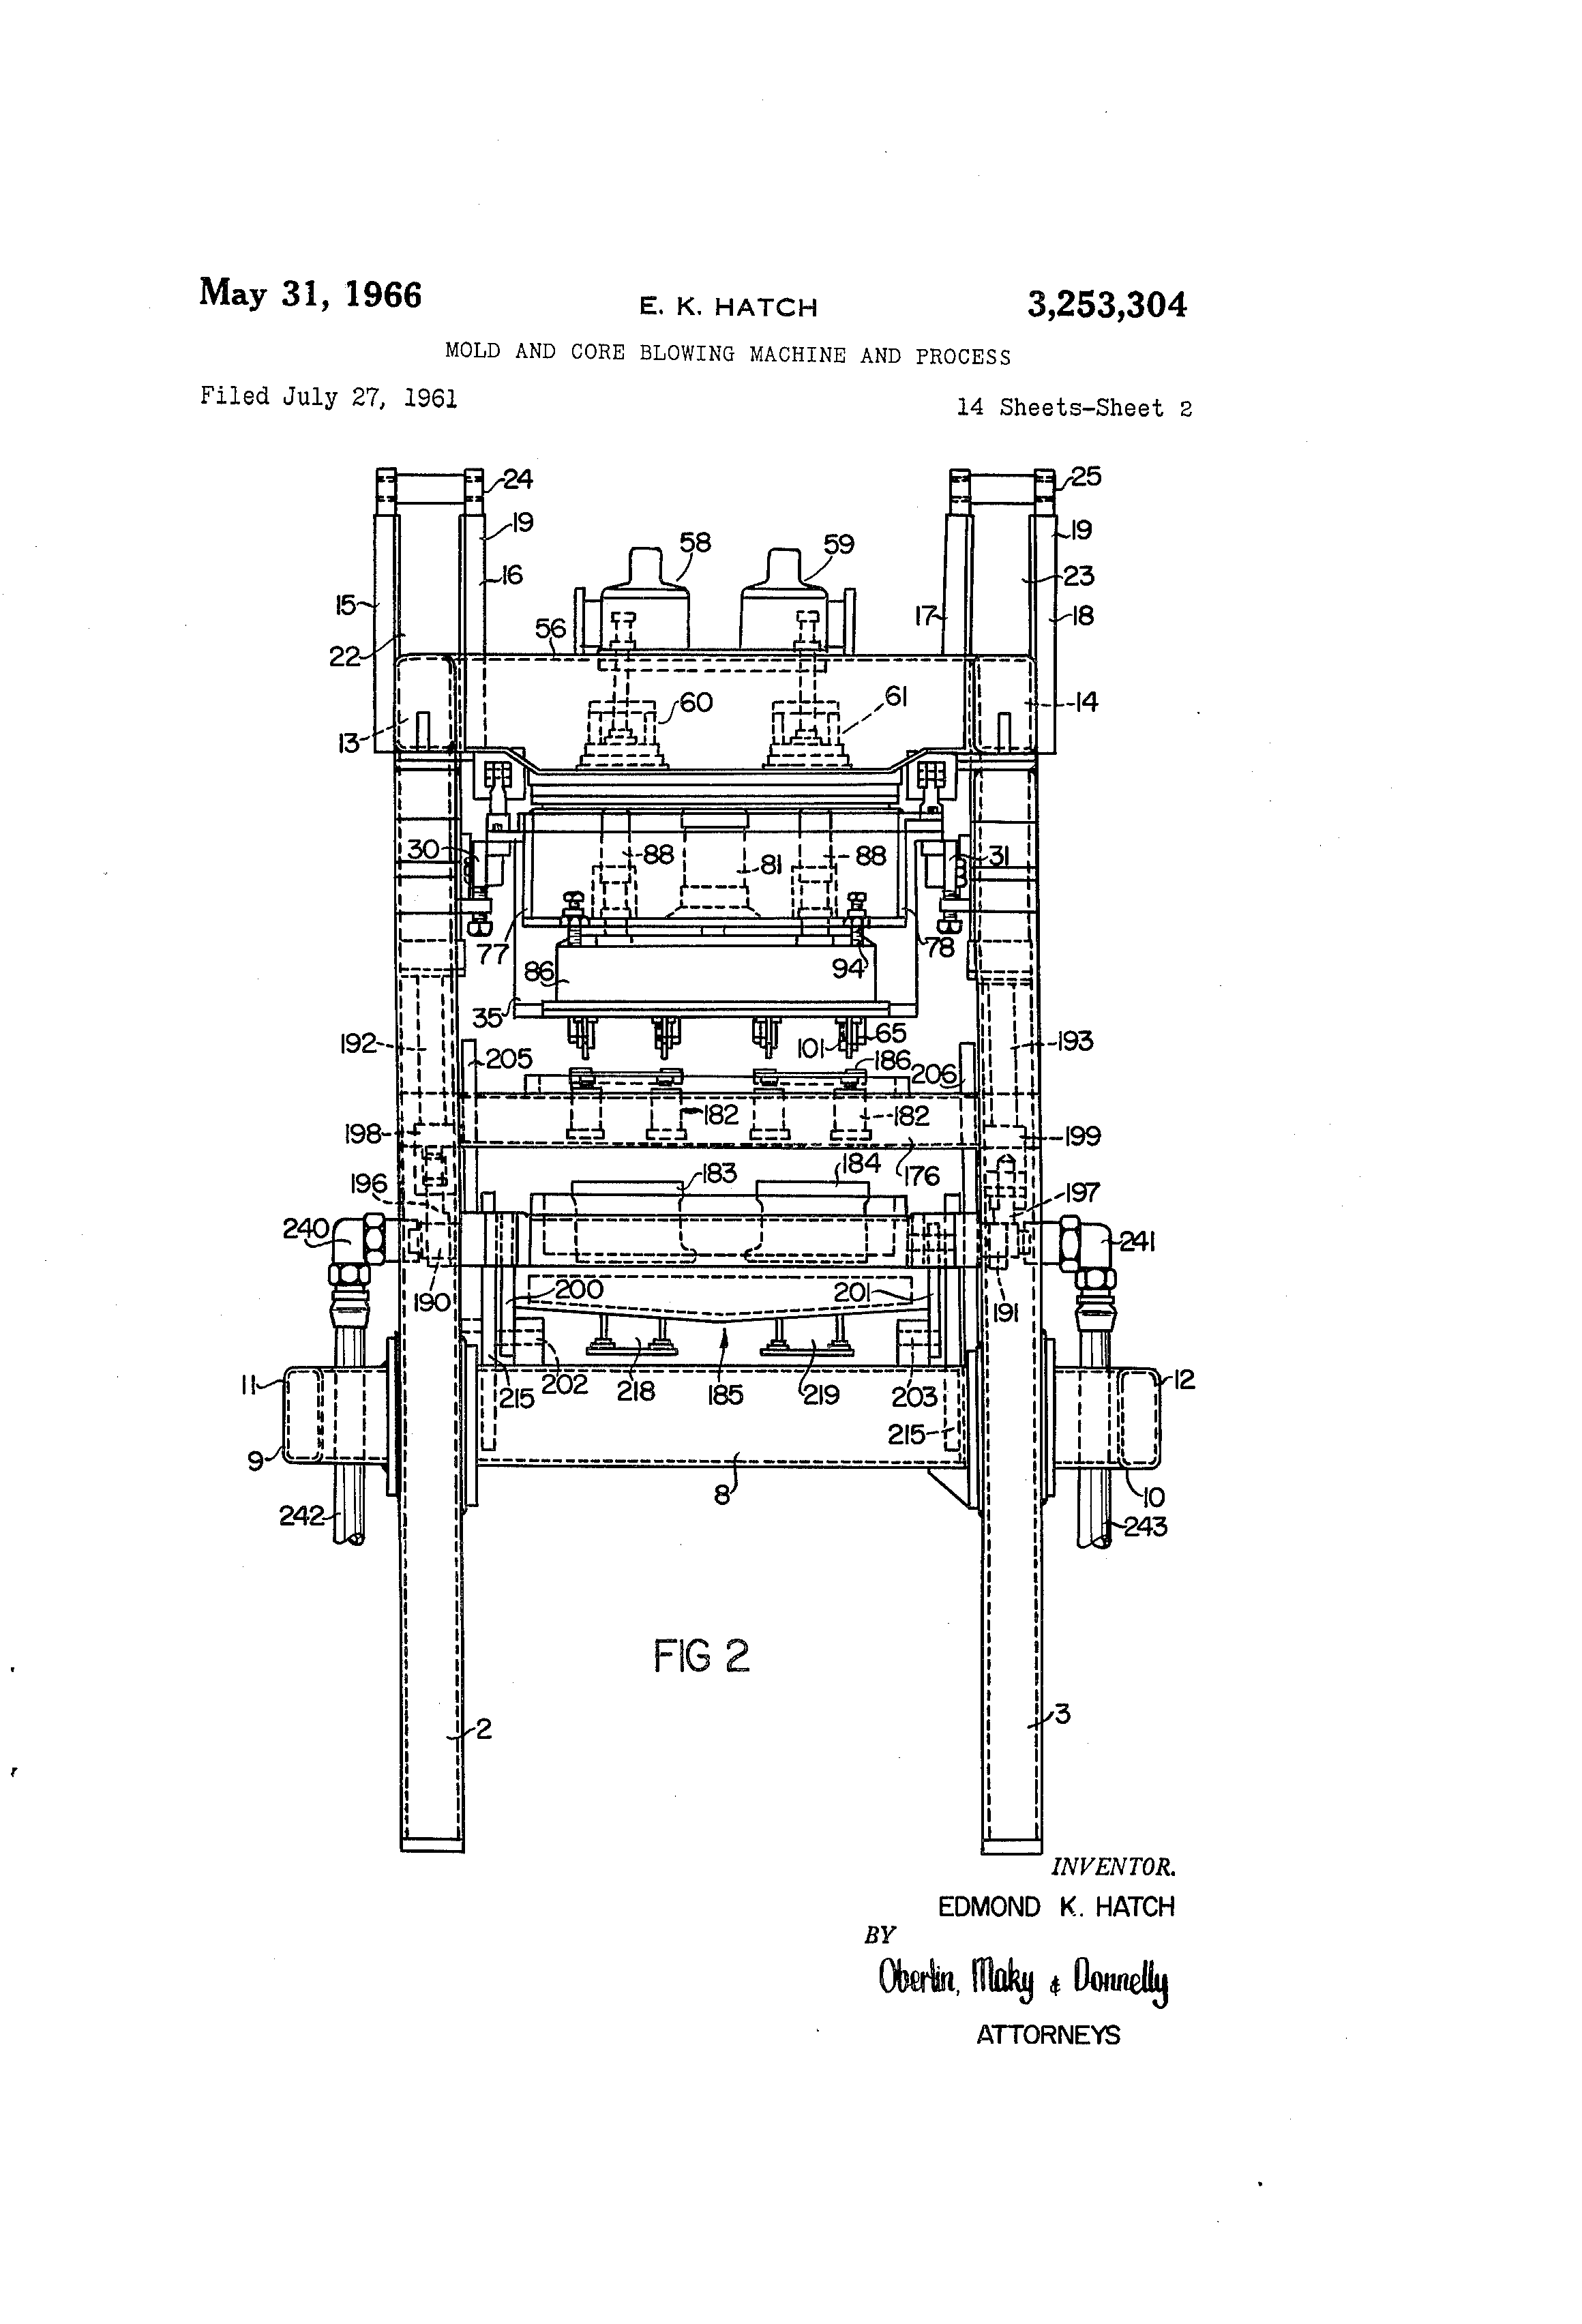 US3253304 1 patent us3253304 mold and core blowing machine and process  at bayanpartner.co